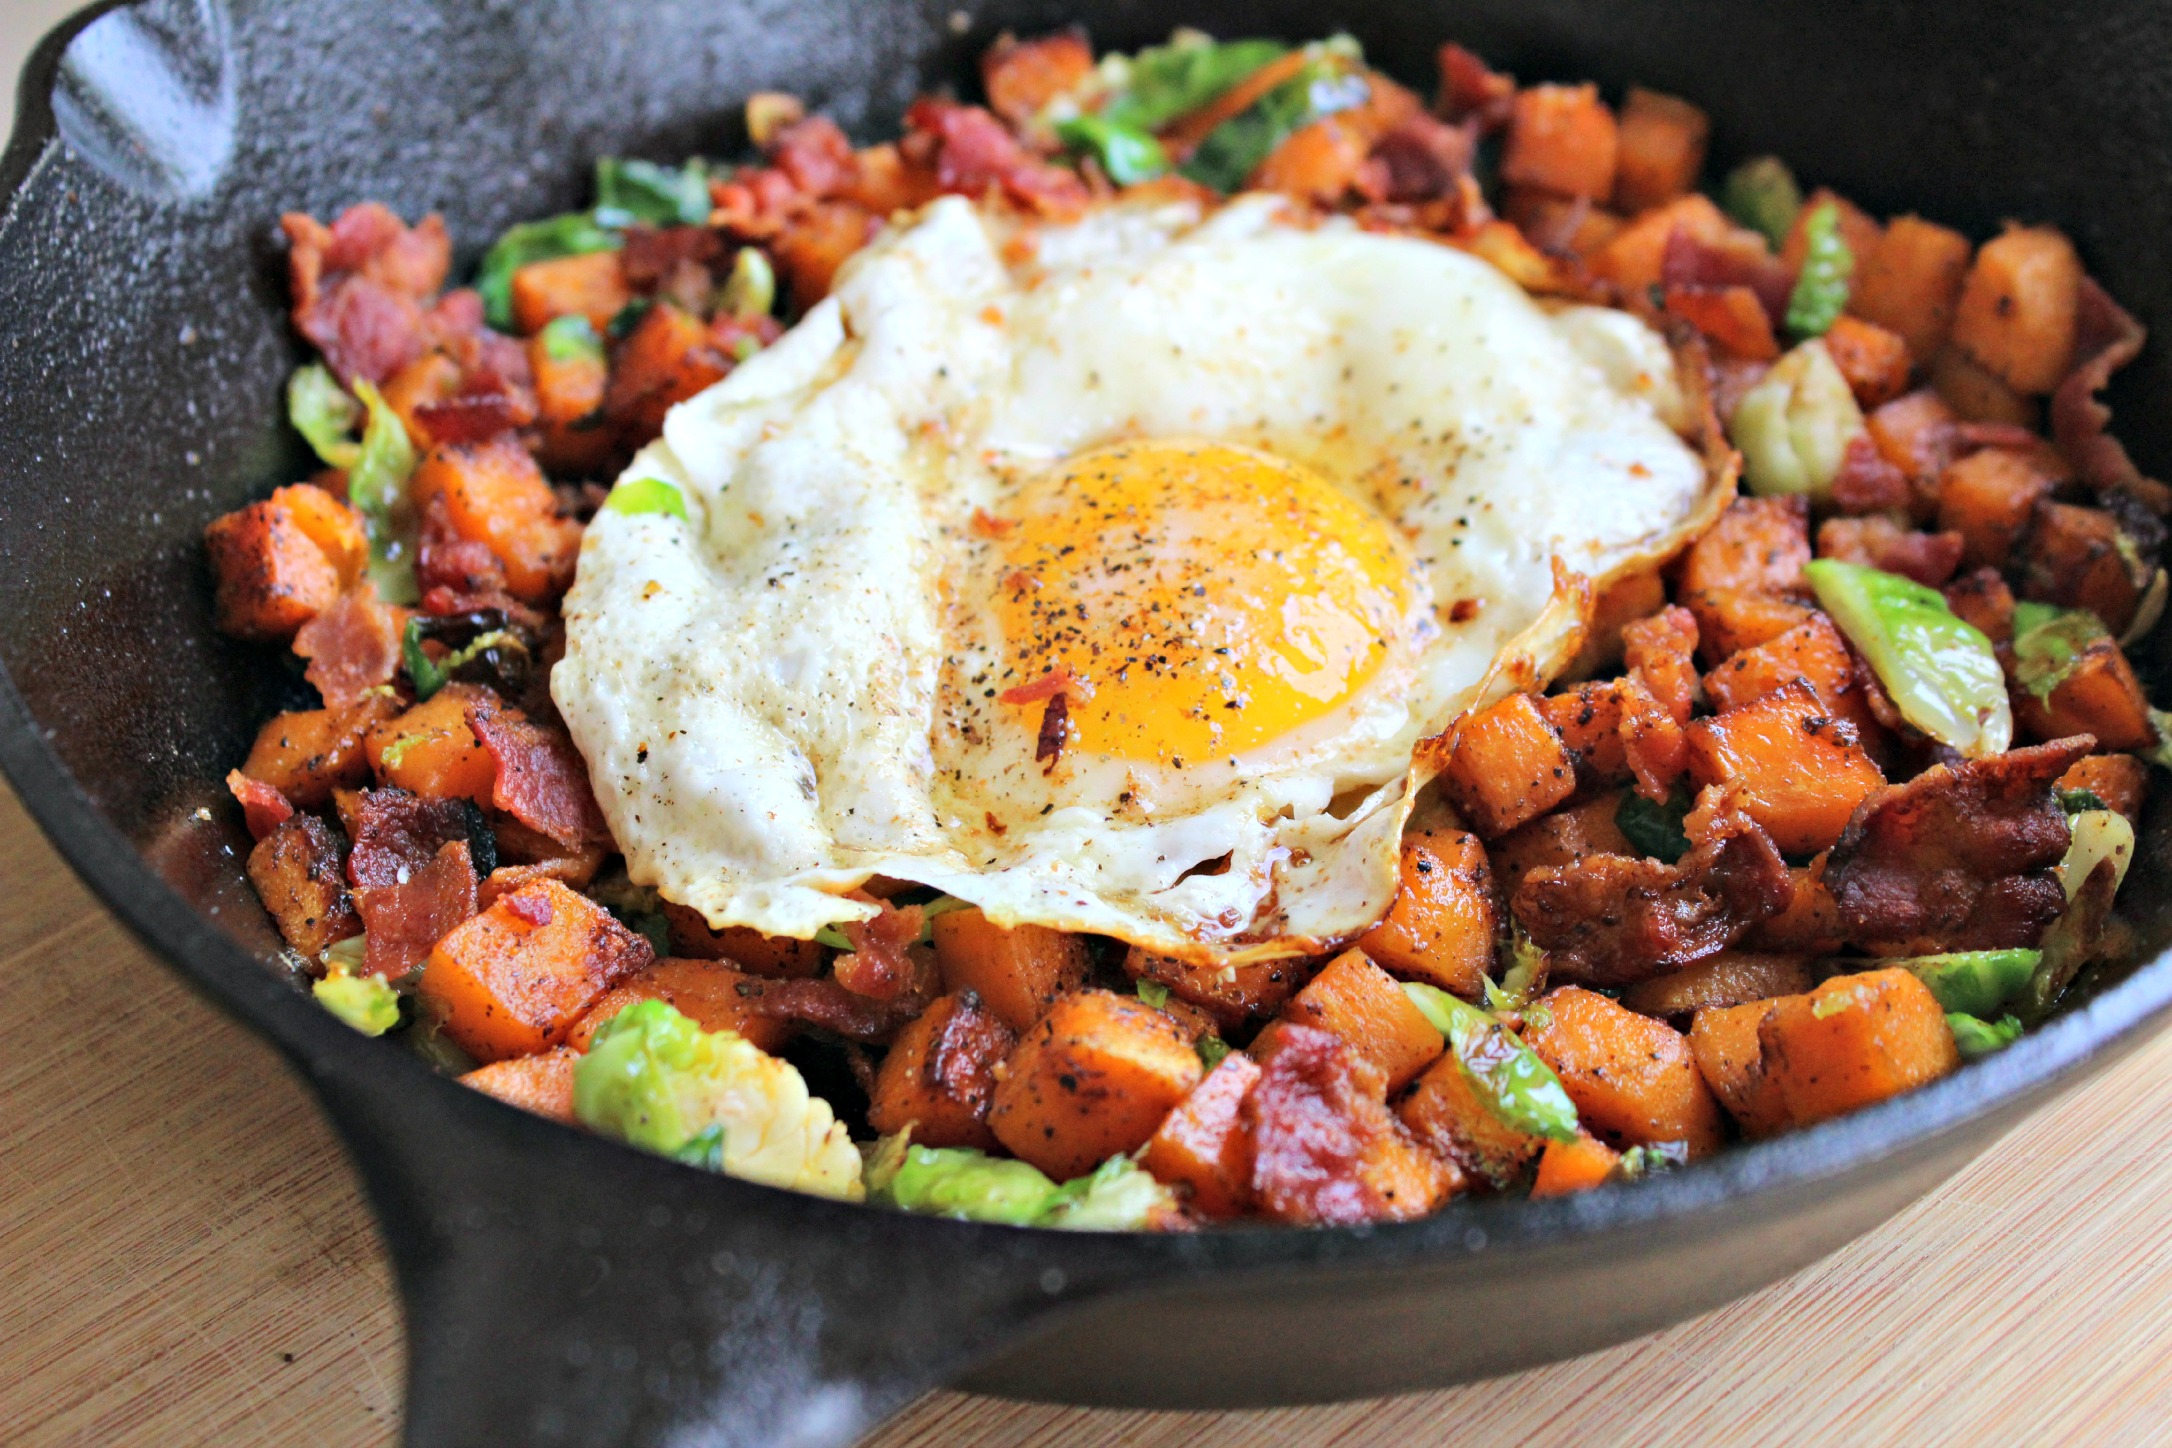 Remove skillet from heat. Top with fried egg. Sprinkle dish with ...